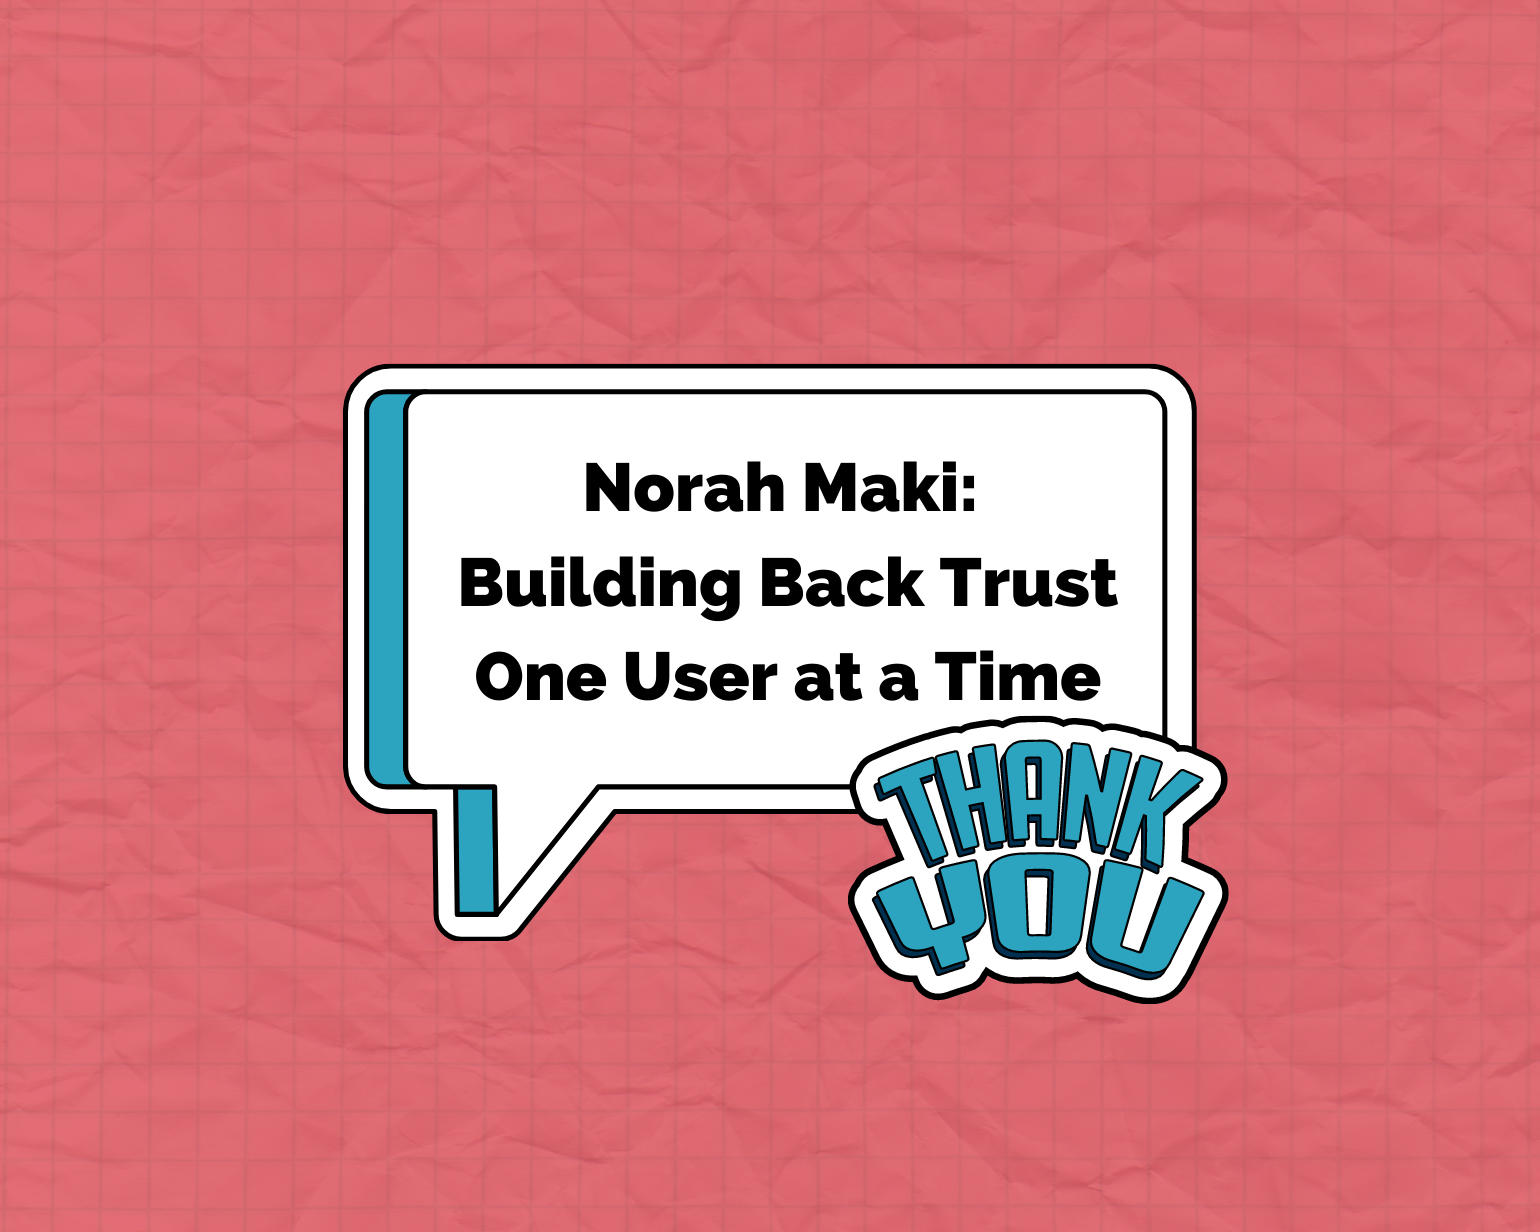 Speech bubble with Norah Maki Building Back Trust One User at a Time and a sticker that says Thank You.